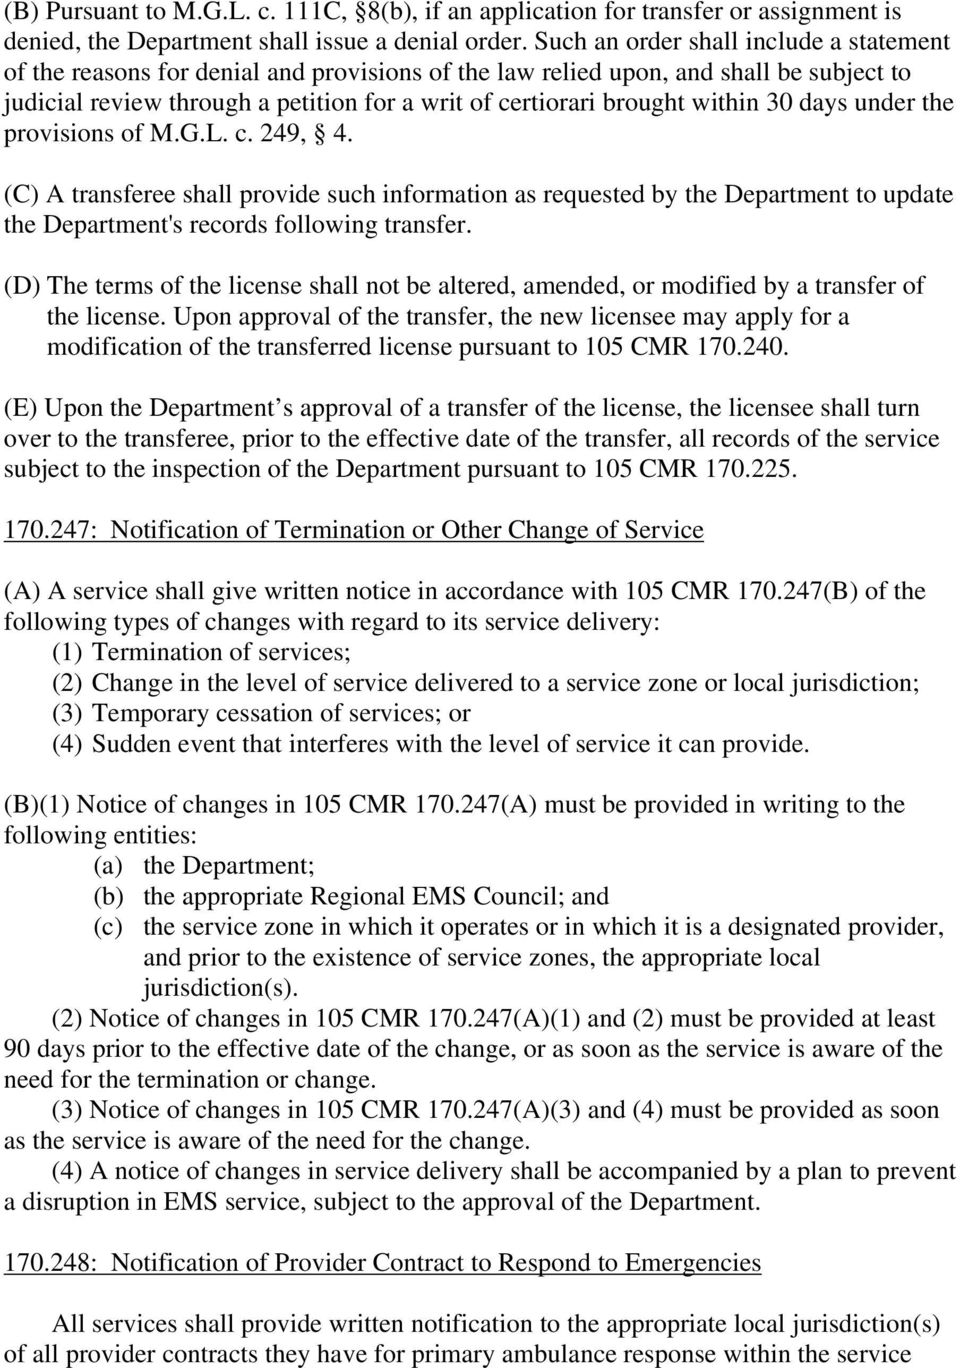 within 30 days under the provisions of M.G.L. c. 249, 4. (C) A transferee shall provide such information as requested by the Department to update the Department's records following transfer.